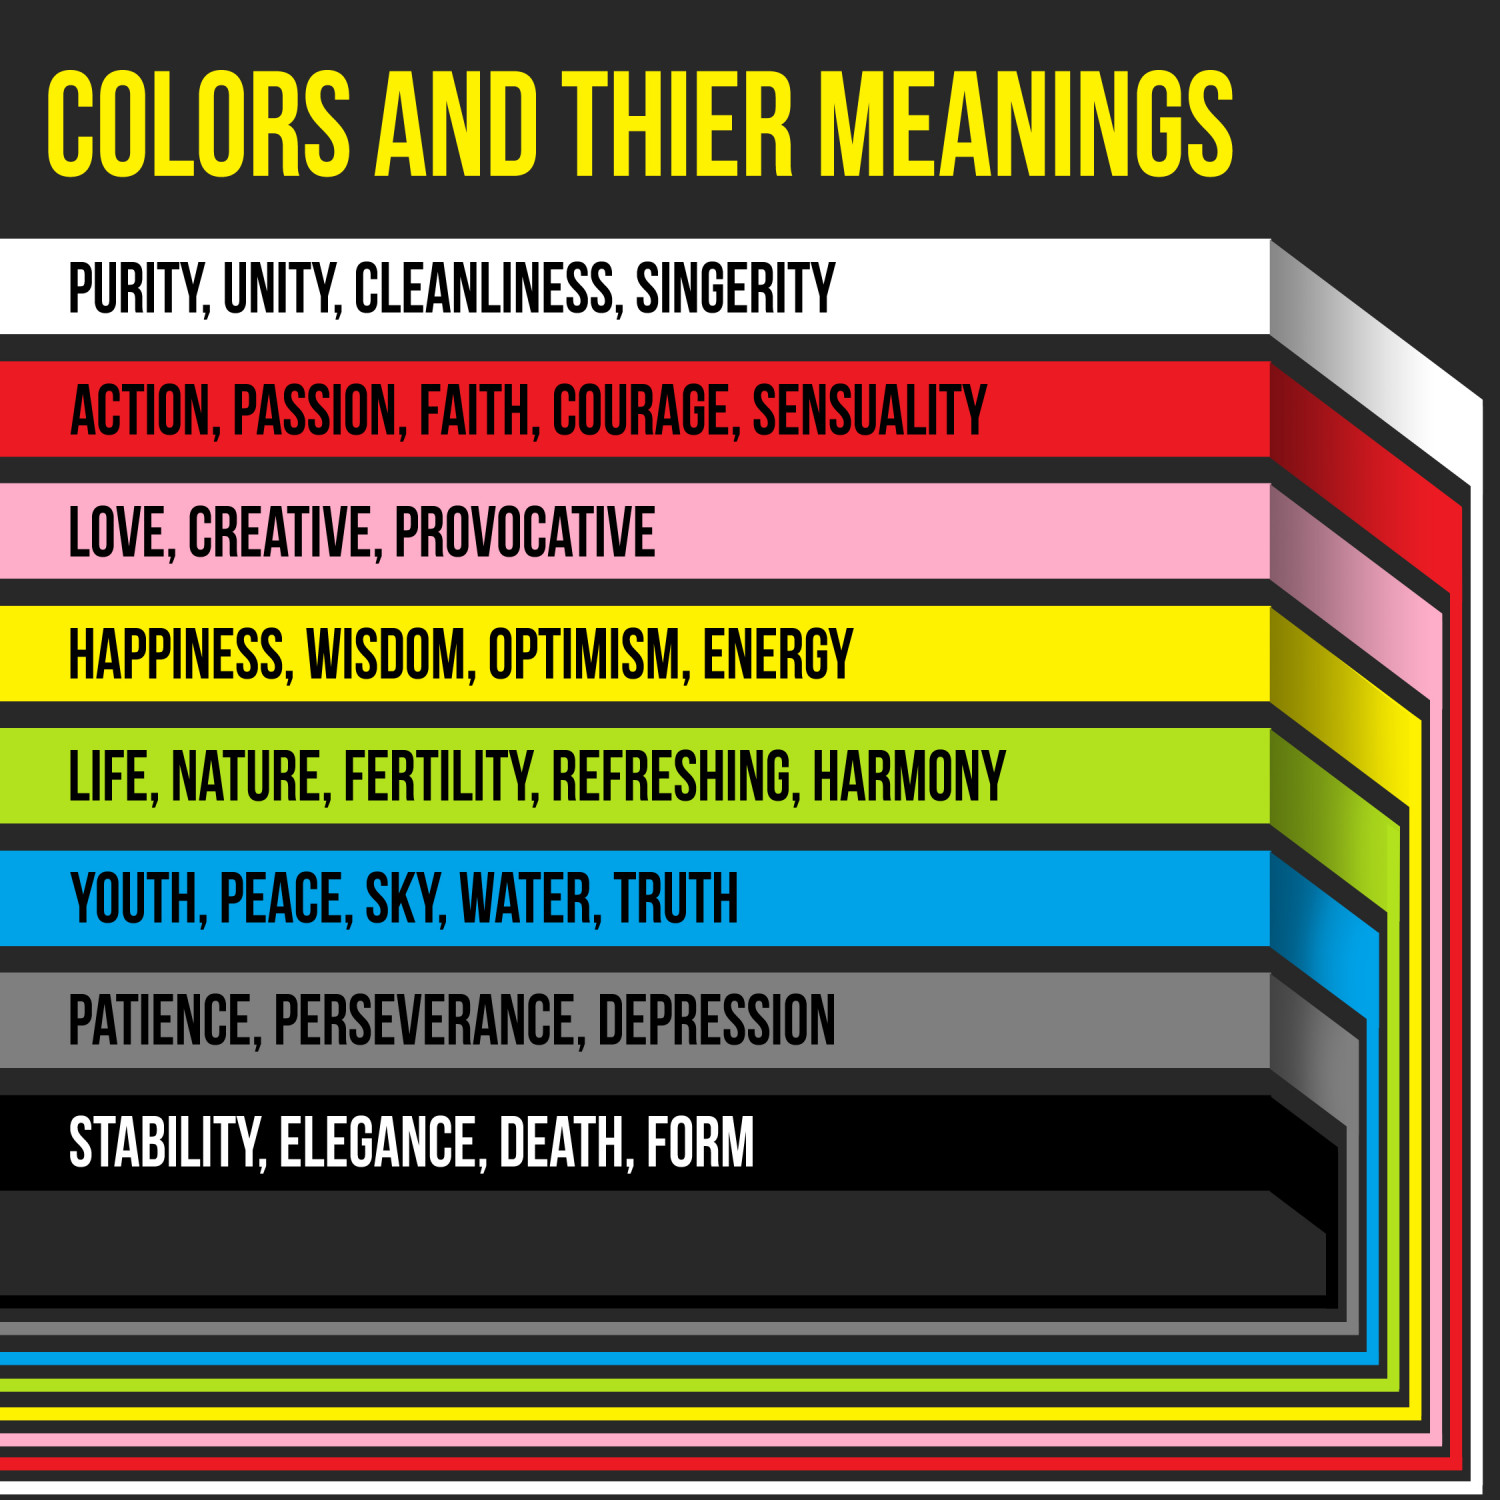 Colors and their meanings | Visual.ly